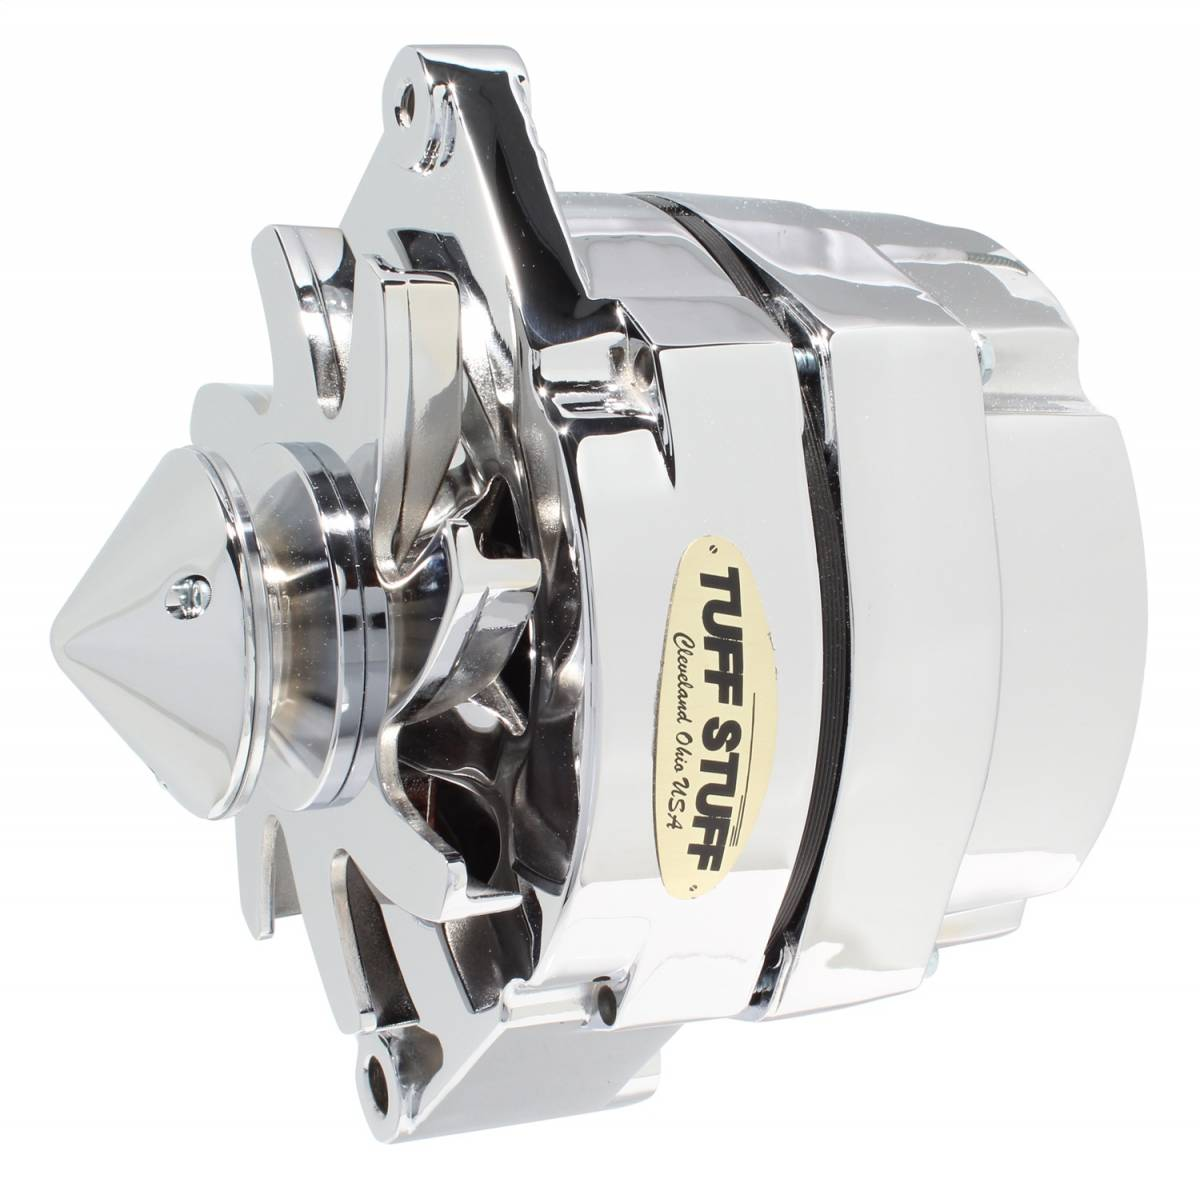 Tuff Stuff Performance - Silver Bullet Alternator 100 AMP OEM Or 1 Wire V Groove Bullet Pulley 4.85 in. Case Depth Lower Mount Boss 2 in. Long Polished 12 Clocking 7139BBULL12